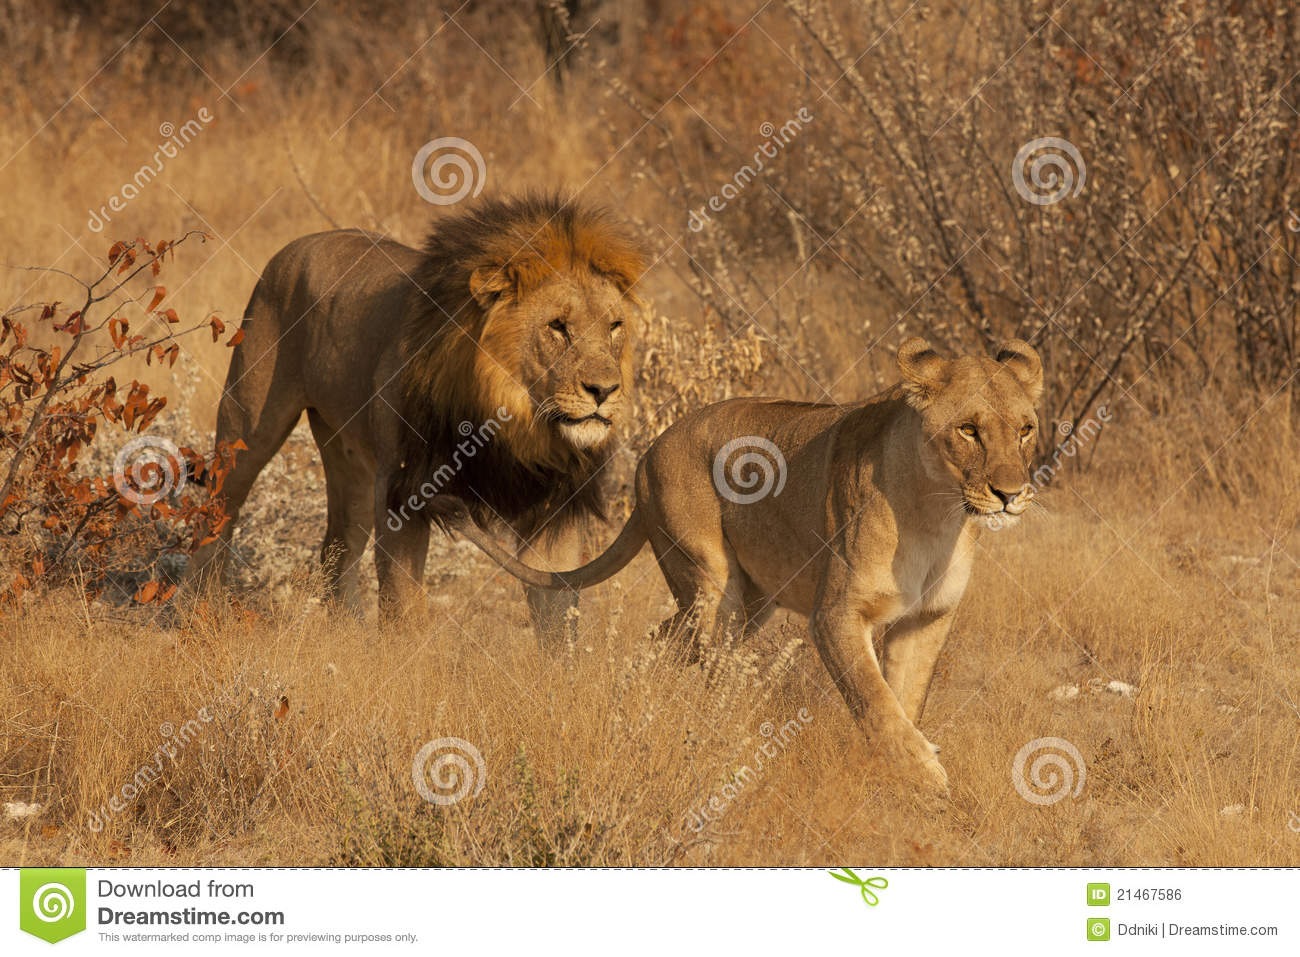 lion and lioness royalty free stock image   image 21467586